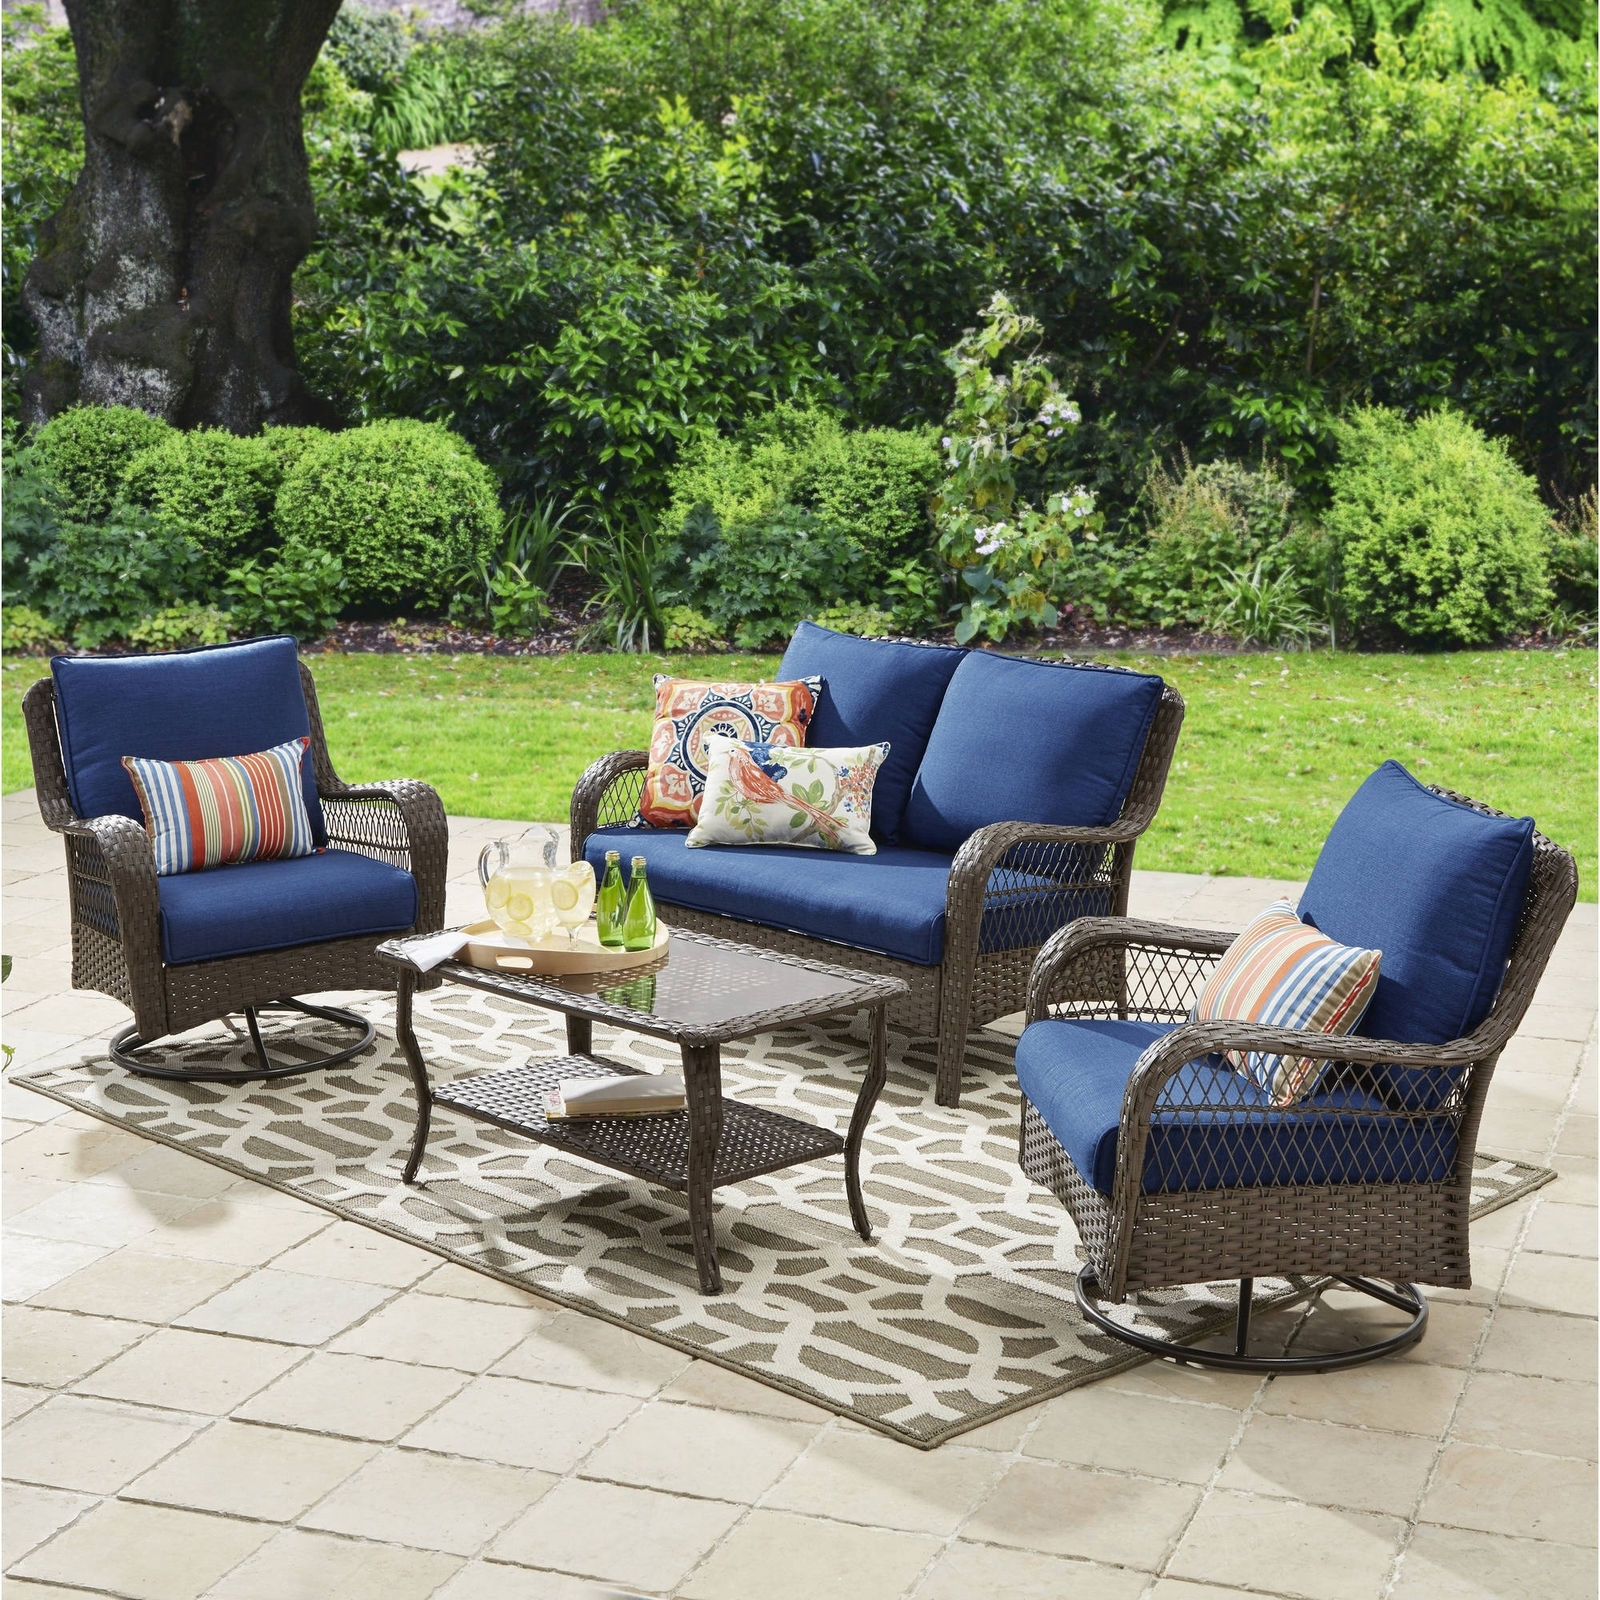 Popular Ebay Patio Conversation Sets In Colebrook 4 Piece Outdoor Patio Conversation Set Seats 4 Deck (View 3 of 15)